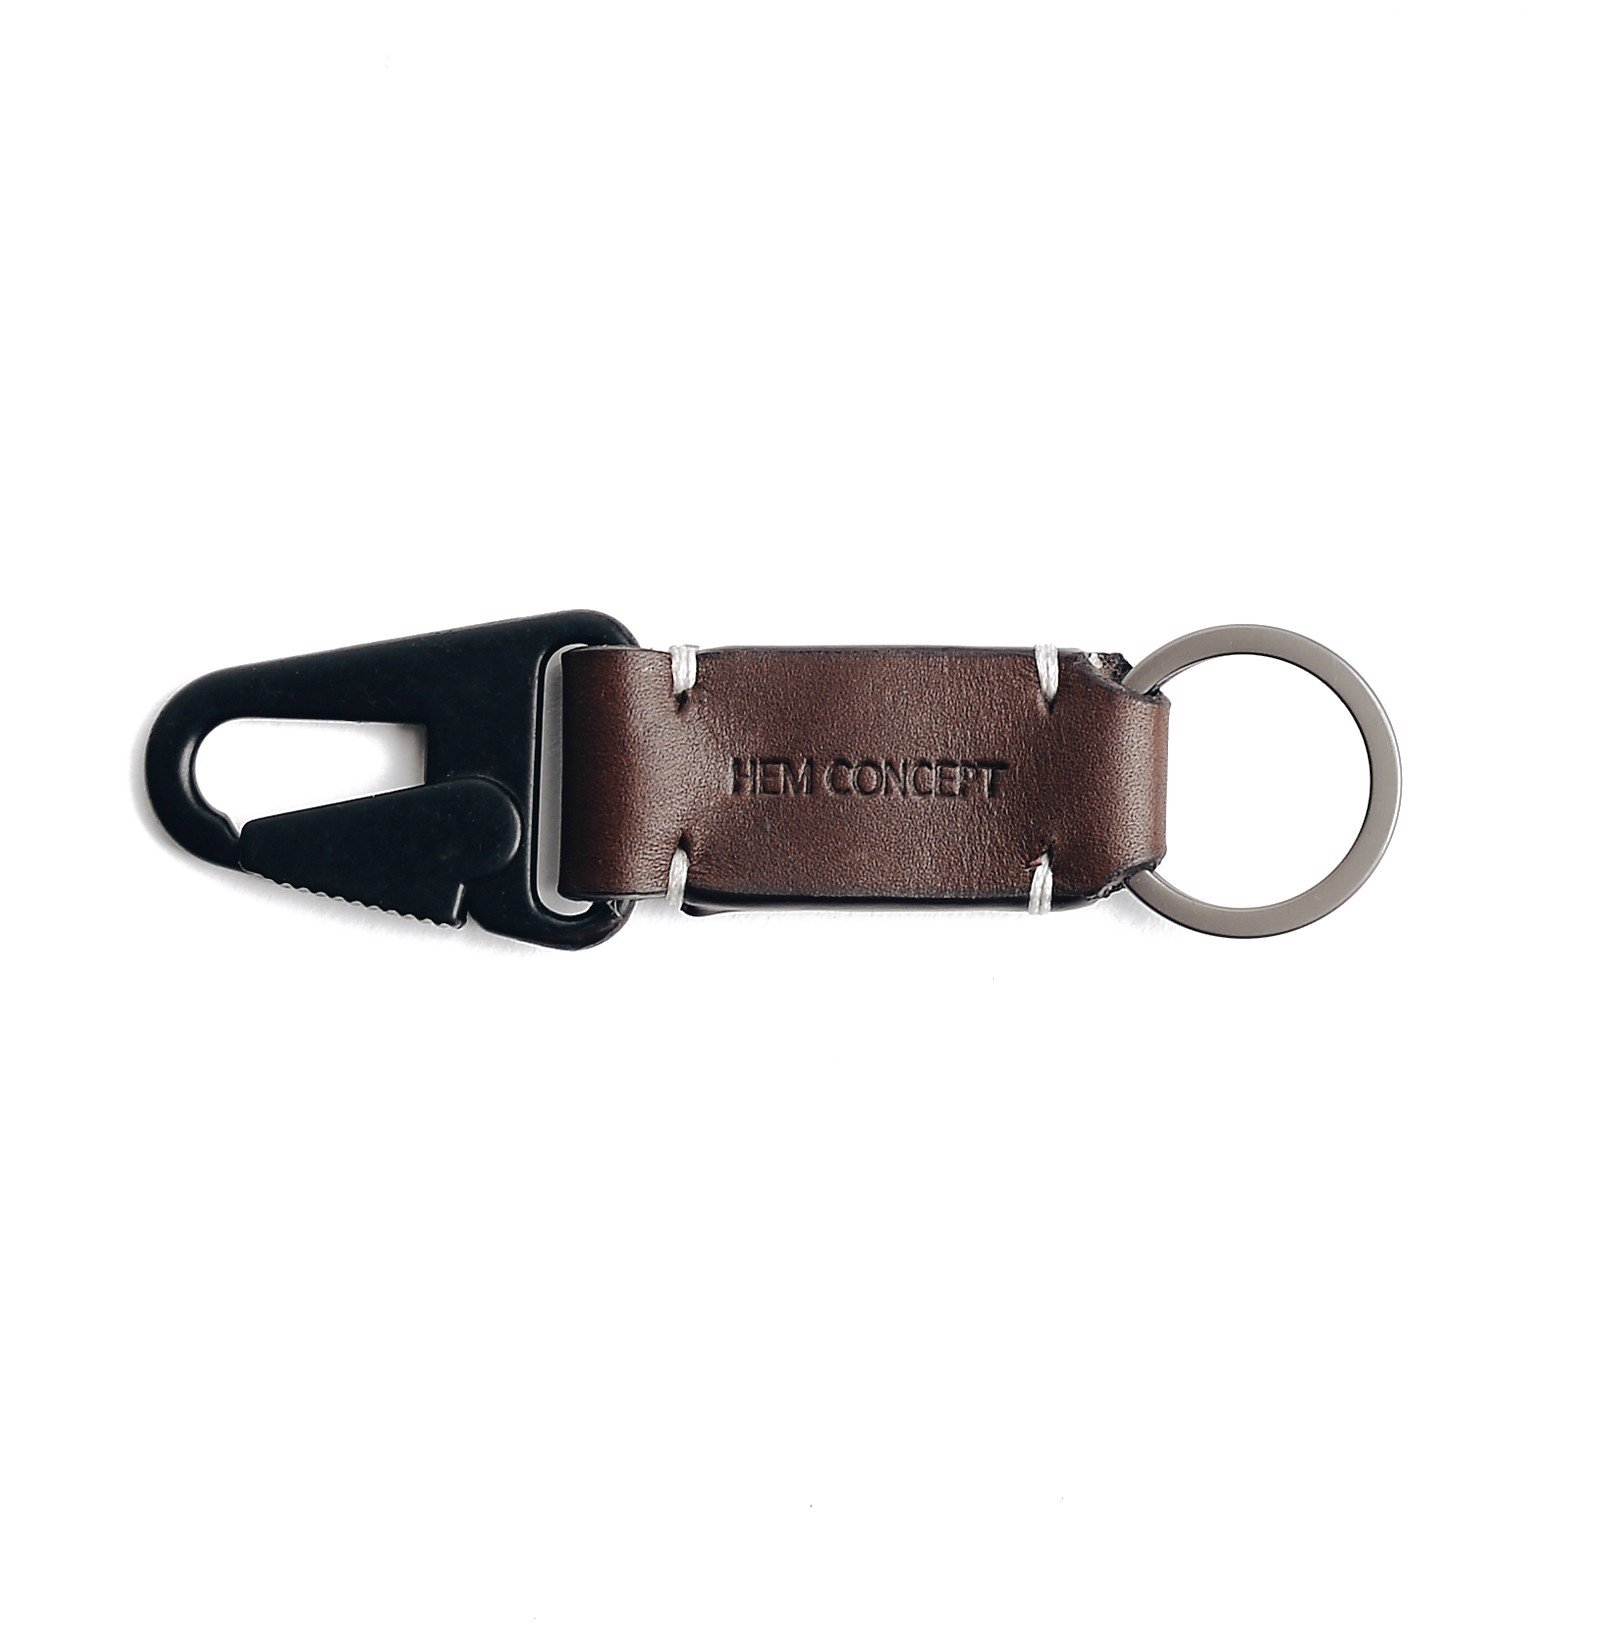 MIL KEYCHAIN S - BROWN